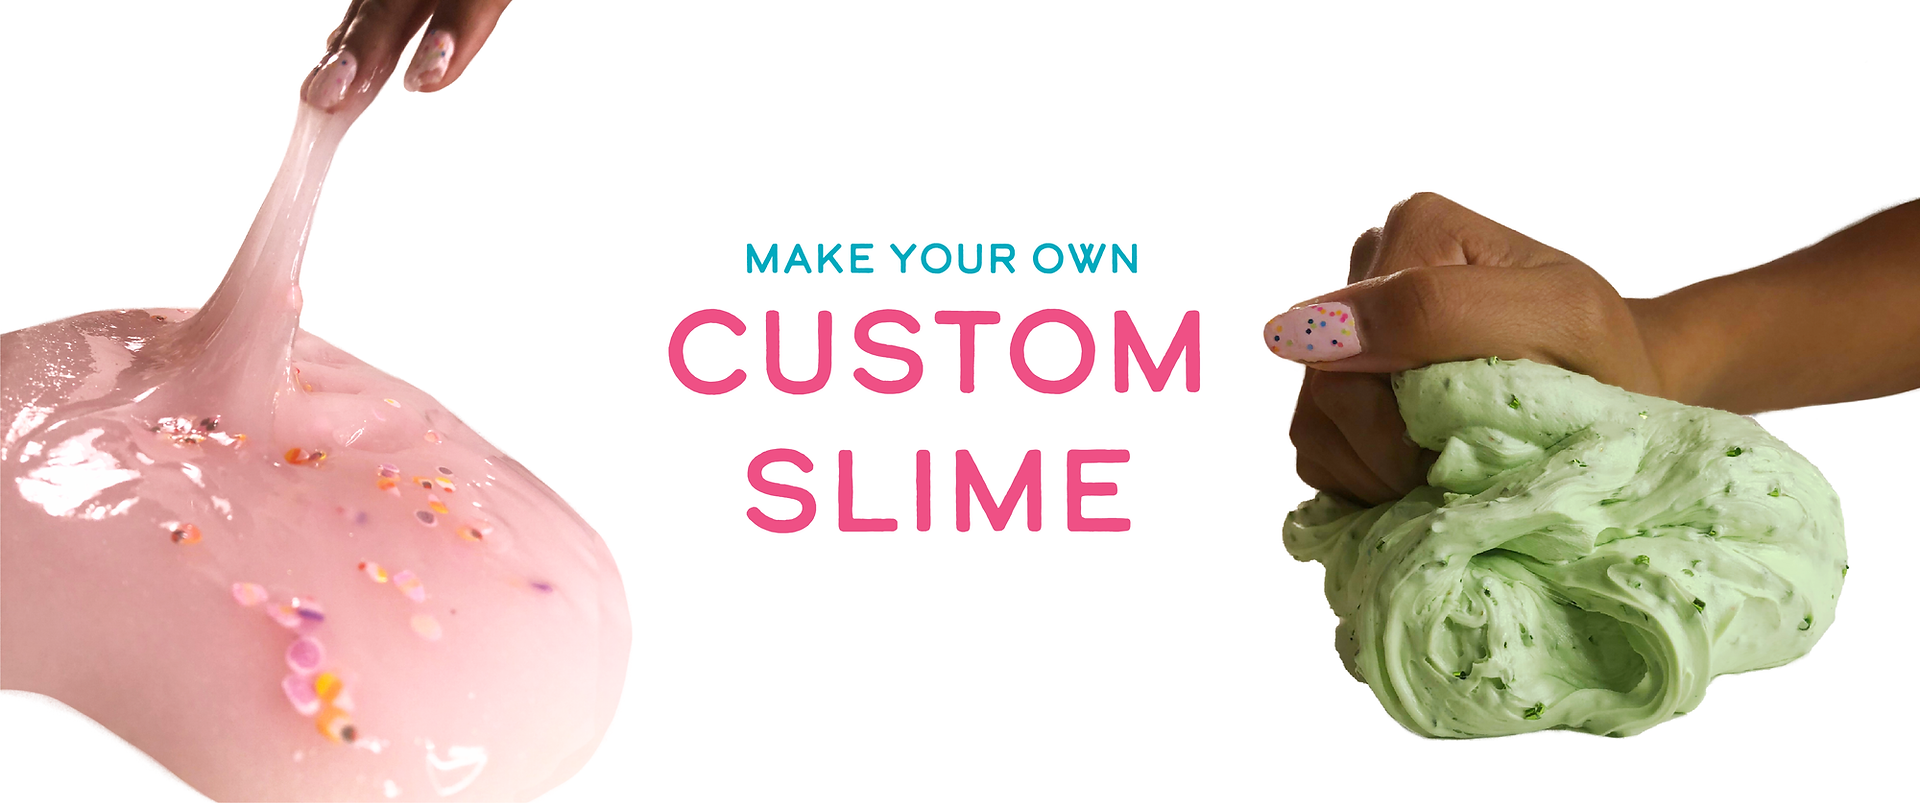 Make your own custom slime-01.png